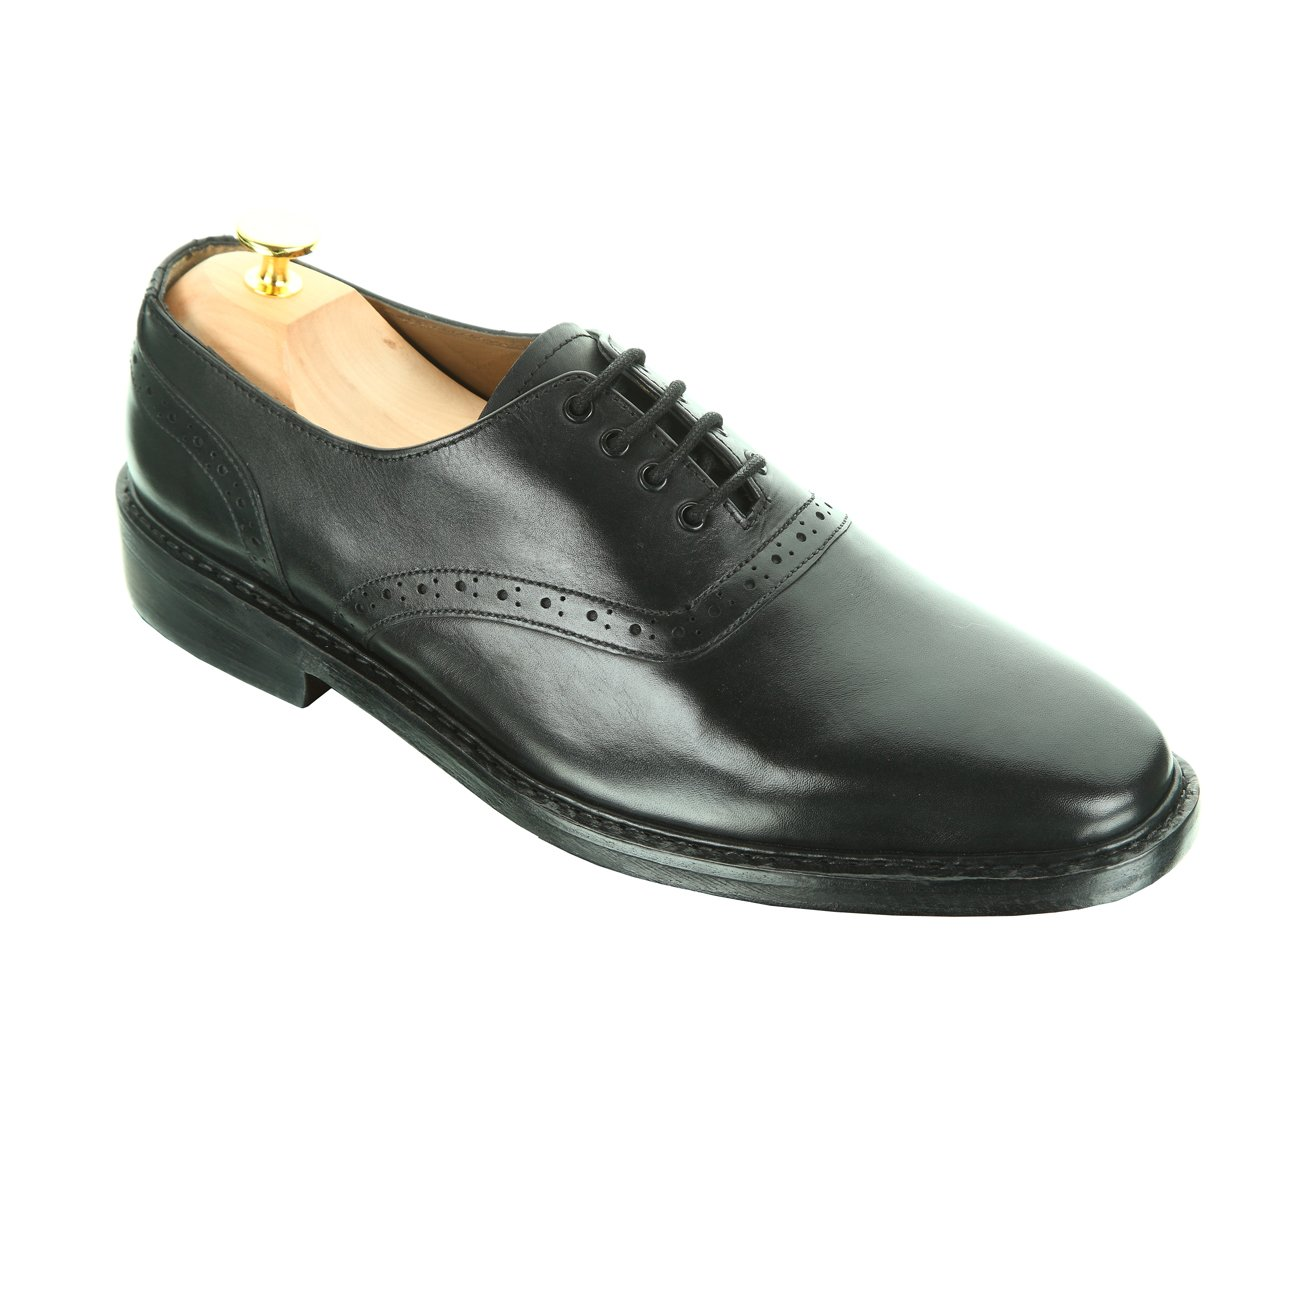 Handmade Damen Frost Adams Mens Leather Shoes, Dress Casual Oxfords Leather Footwear, Color Black, Size US12